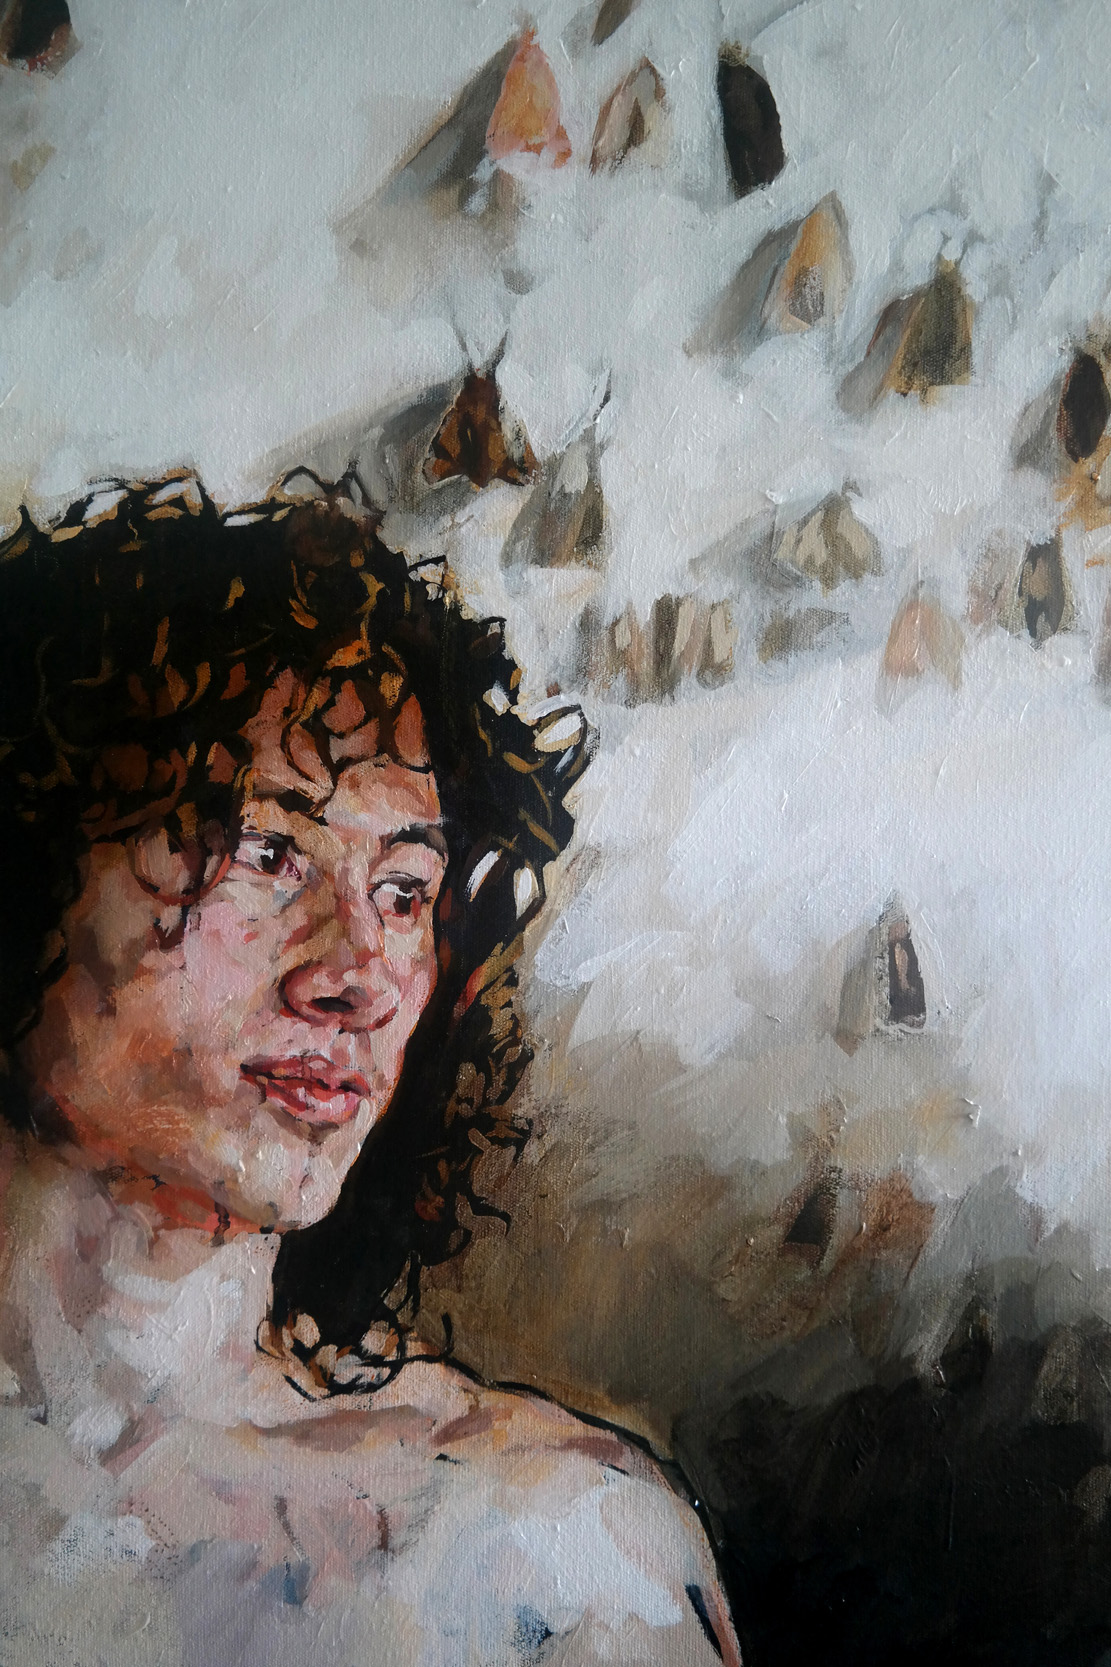 The_young_man_kept_company_this_moths_detail_oil_on_canvas_80_x_80cm_net